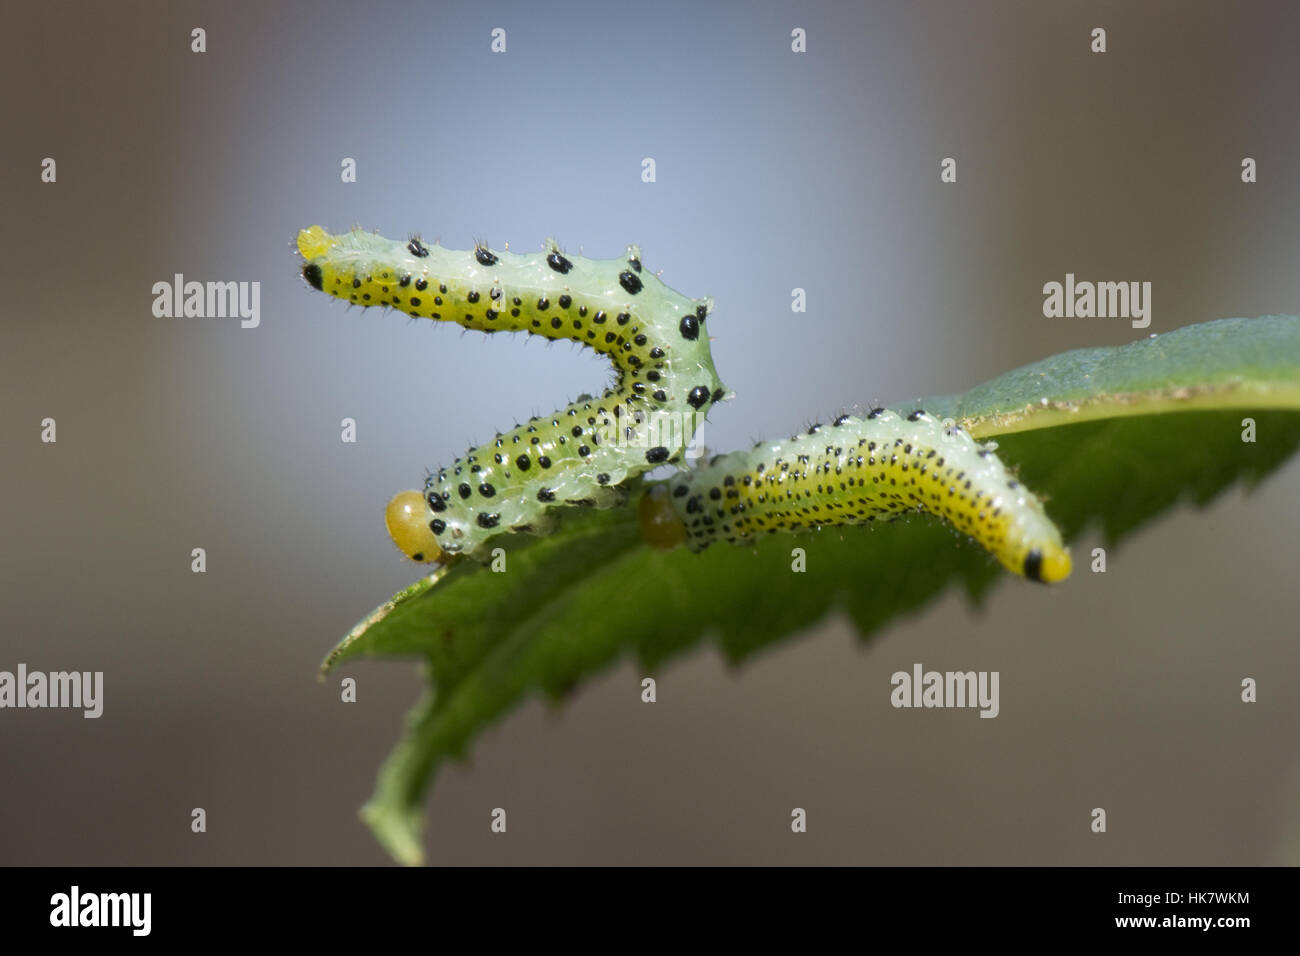 Rose sawfly, Arge pagana, larvae in their defensive position on a partly eaten rose leaf, September - Stock Image